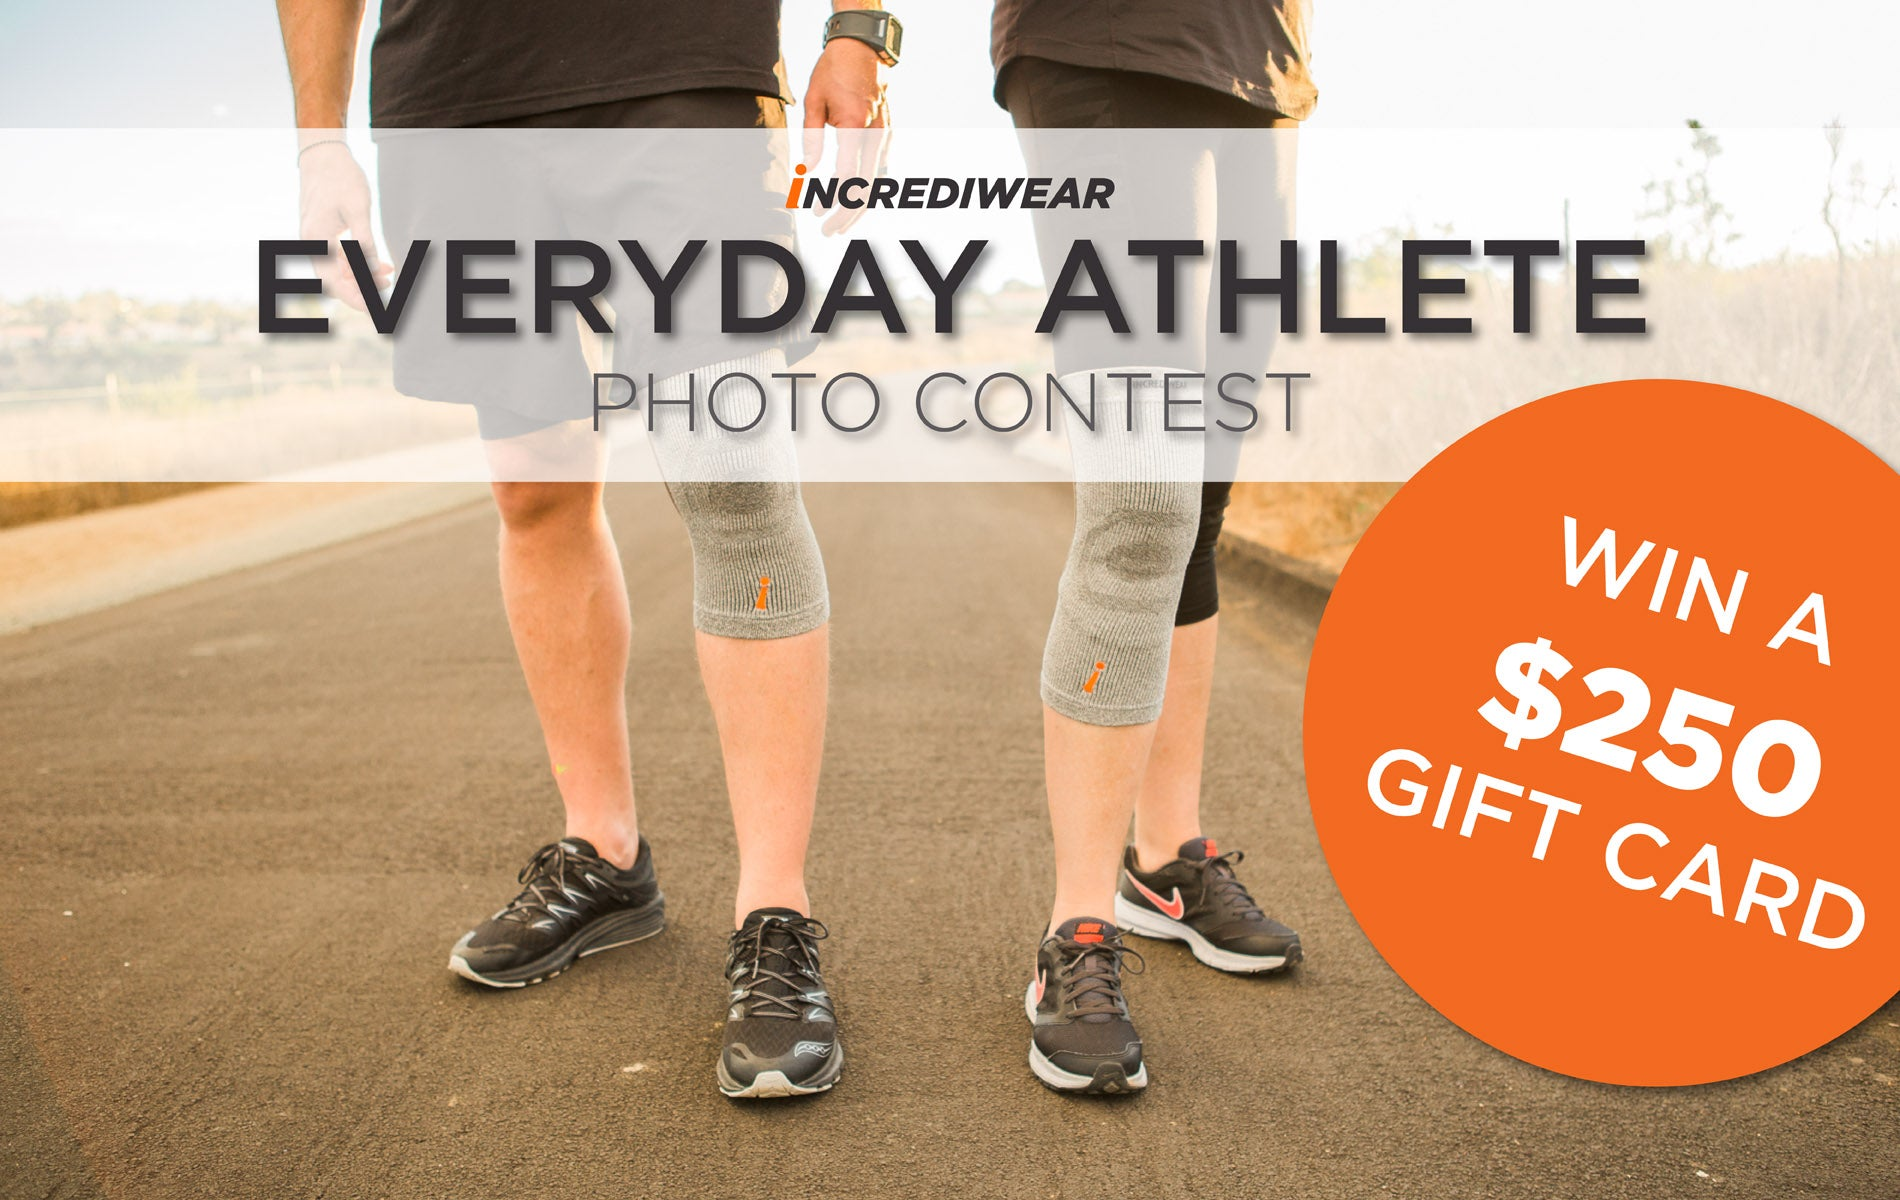 Everyday Athlete Photo Contest